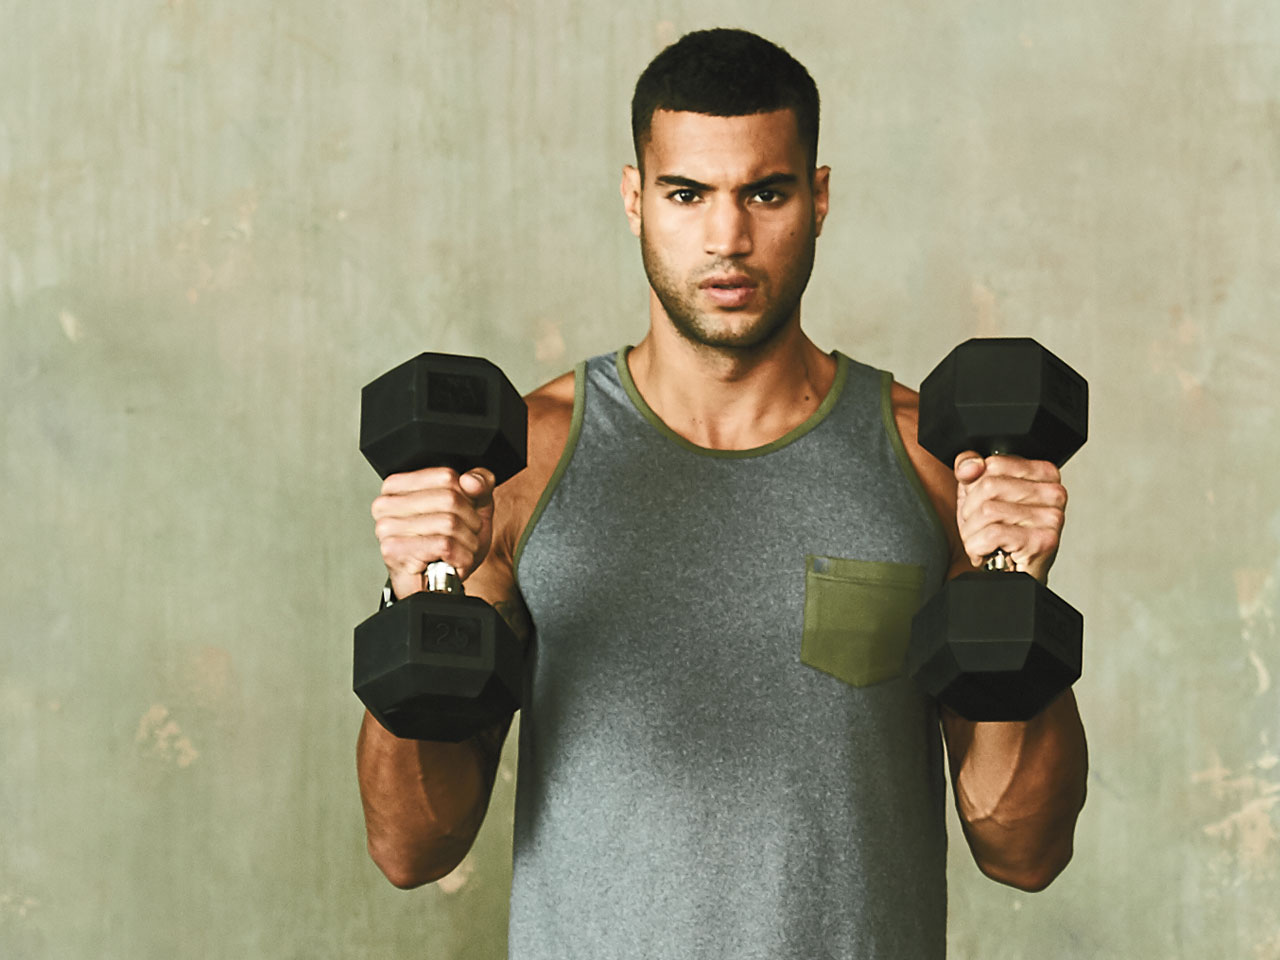 The ultimate beginner's workout program